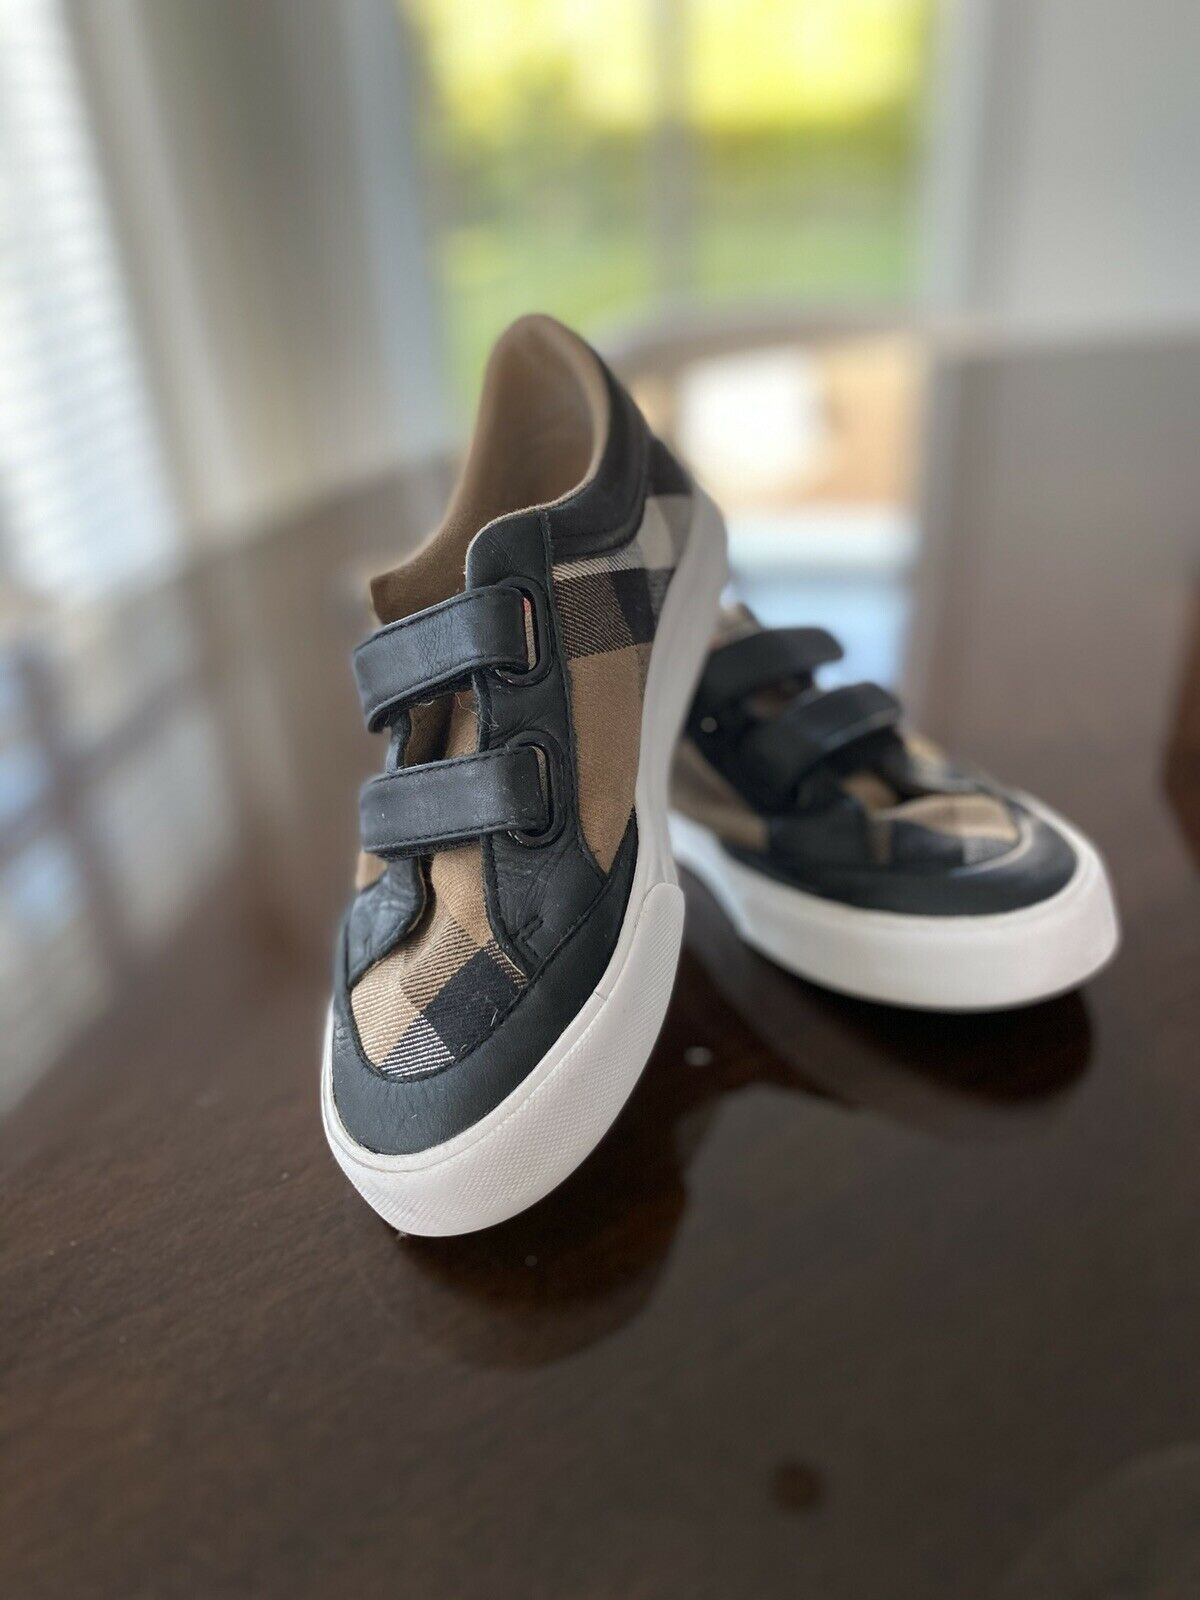 Orig. Burberry Kinder Sport Turn Sneakers Schuhe Shoes Nova Check Gr. 30 Schwar - 65.00,Kaufpreis 65,datum 24.08.2020 17:49:49,Website dhd24.com